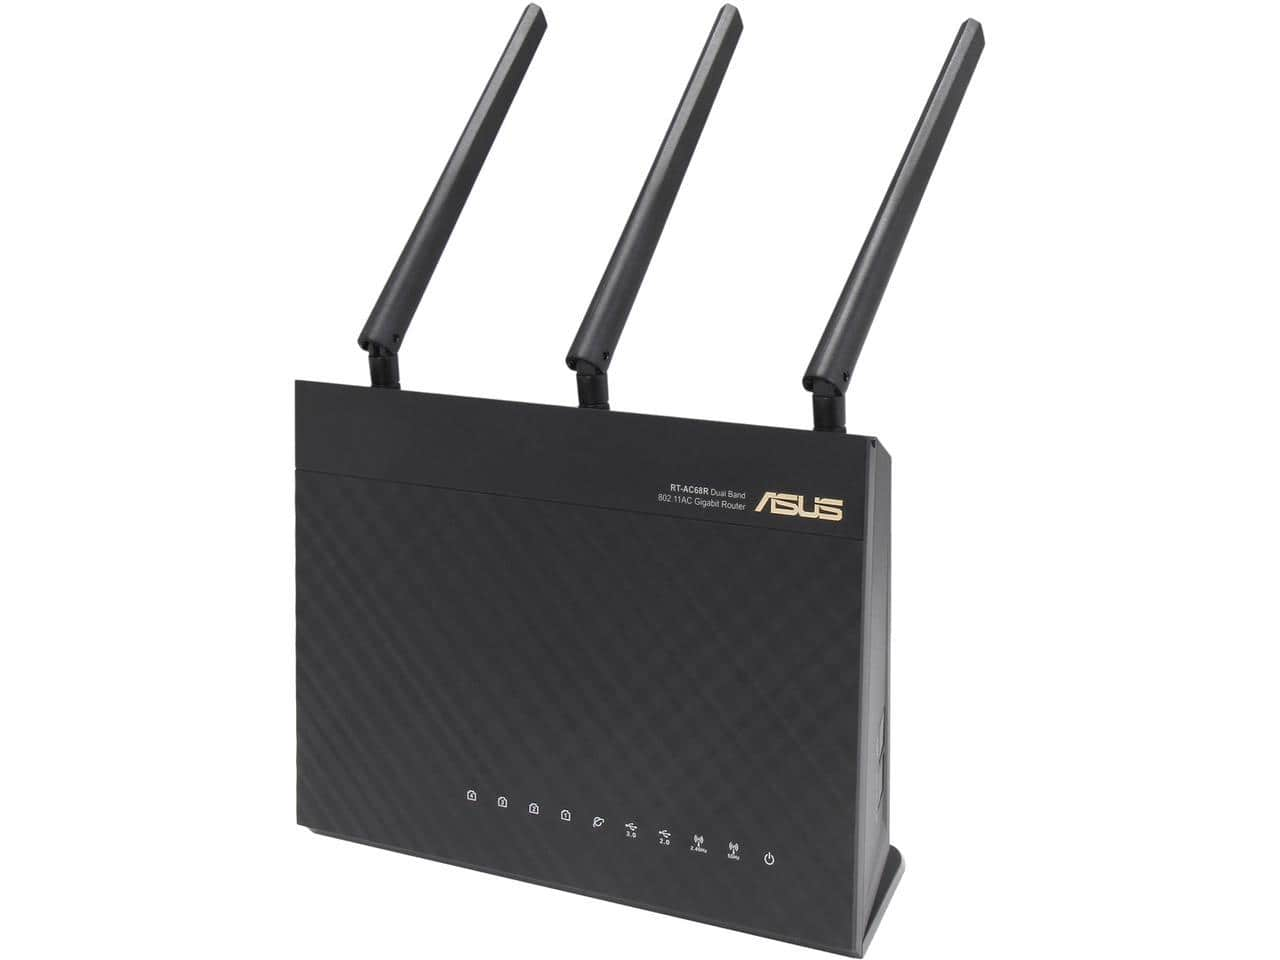 Refurb. Asus RT-AC68R AC1900 Dual-Band Wireless Gigabit Router for $69.99, Refurb. Asus RT-N12/D1 N300 Wireless Router/AP/Range Extender for $9.99 & More @ Newegg.com